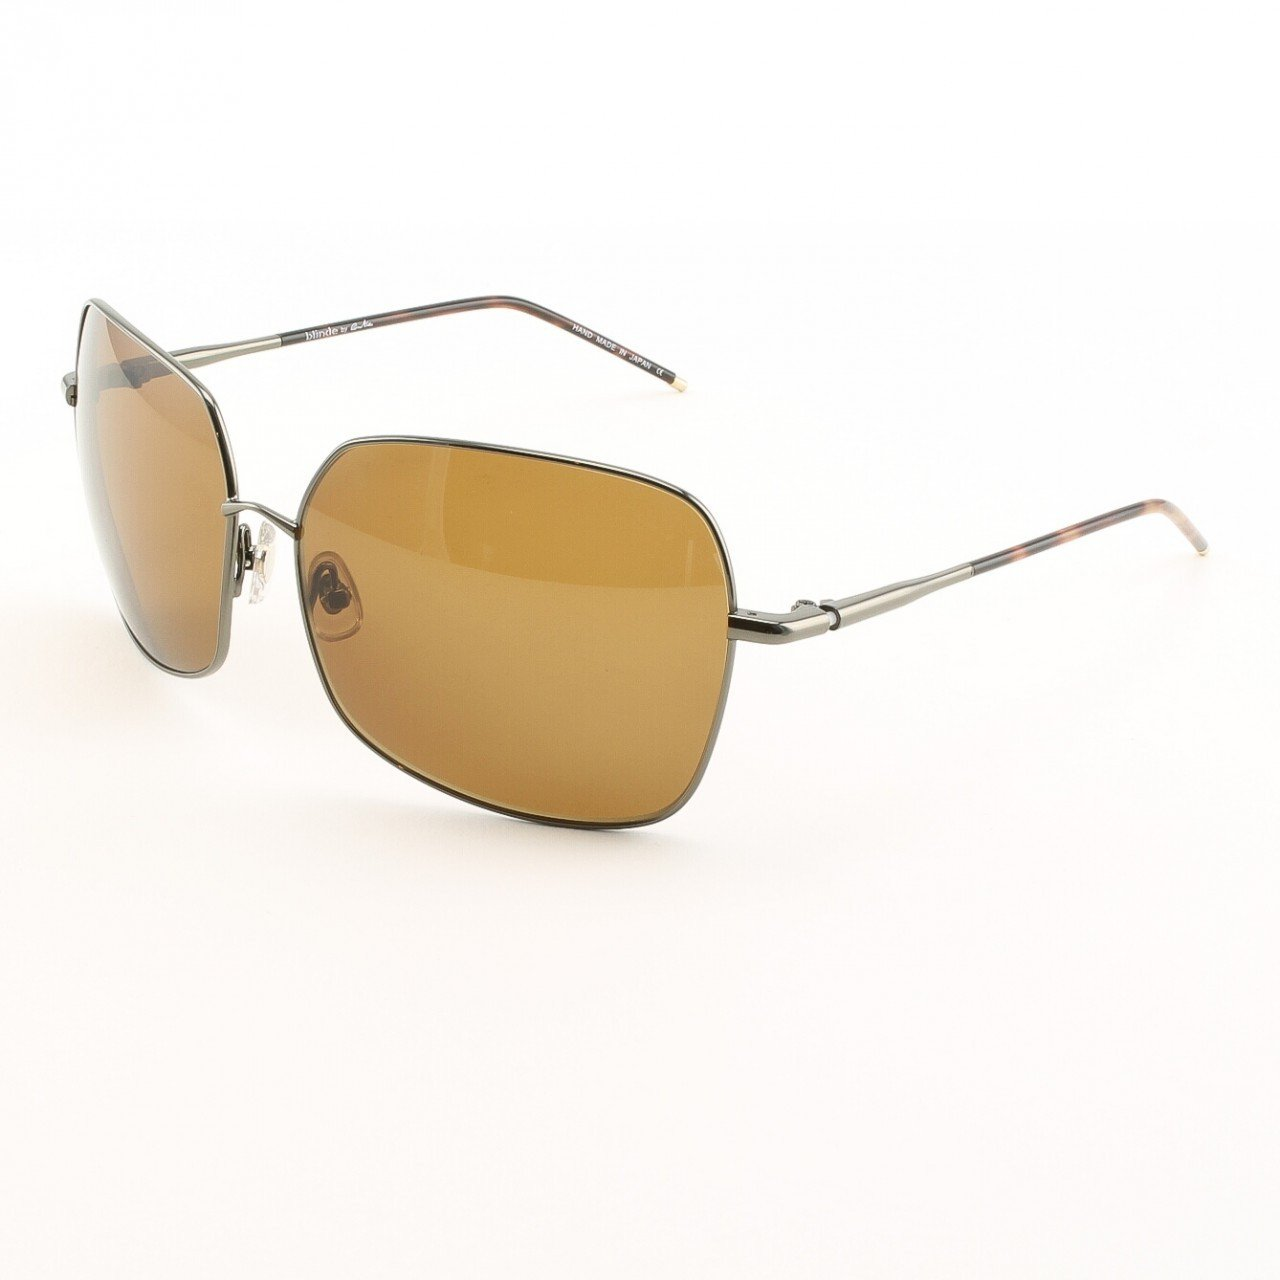 Blinde Lemme Guess Unisex Sunglasses Col. Dark Brown with Brown Lenses